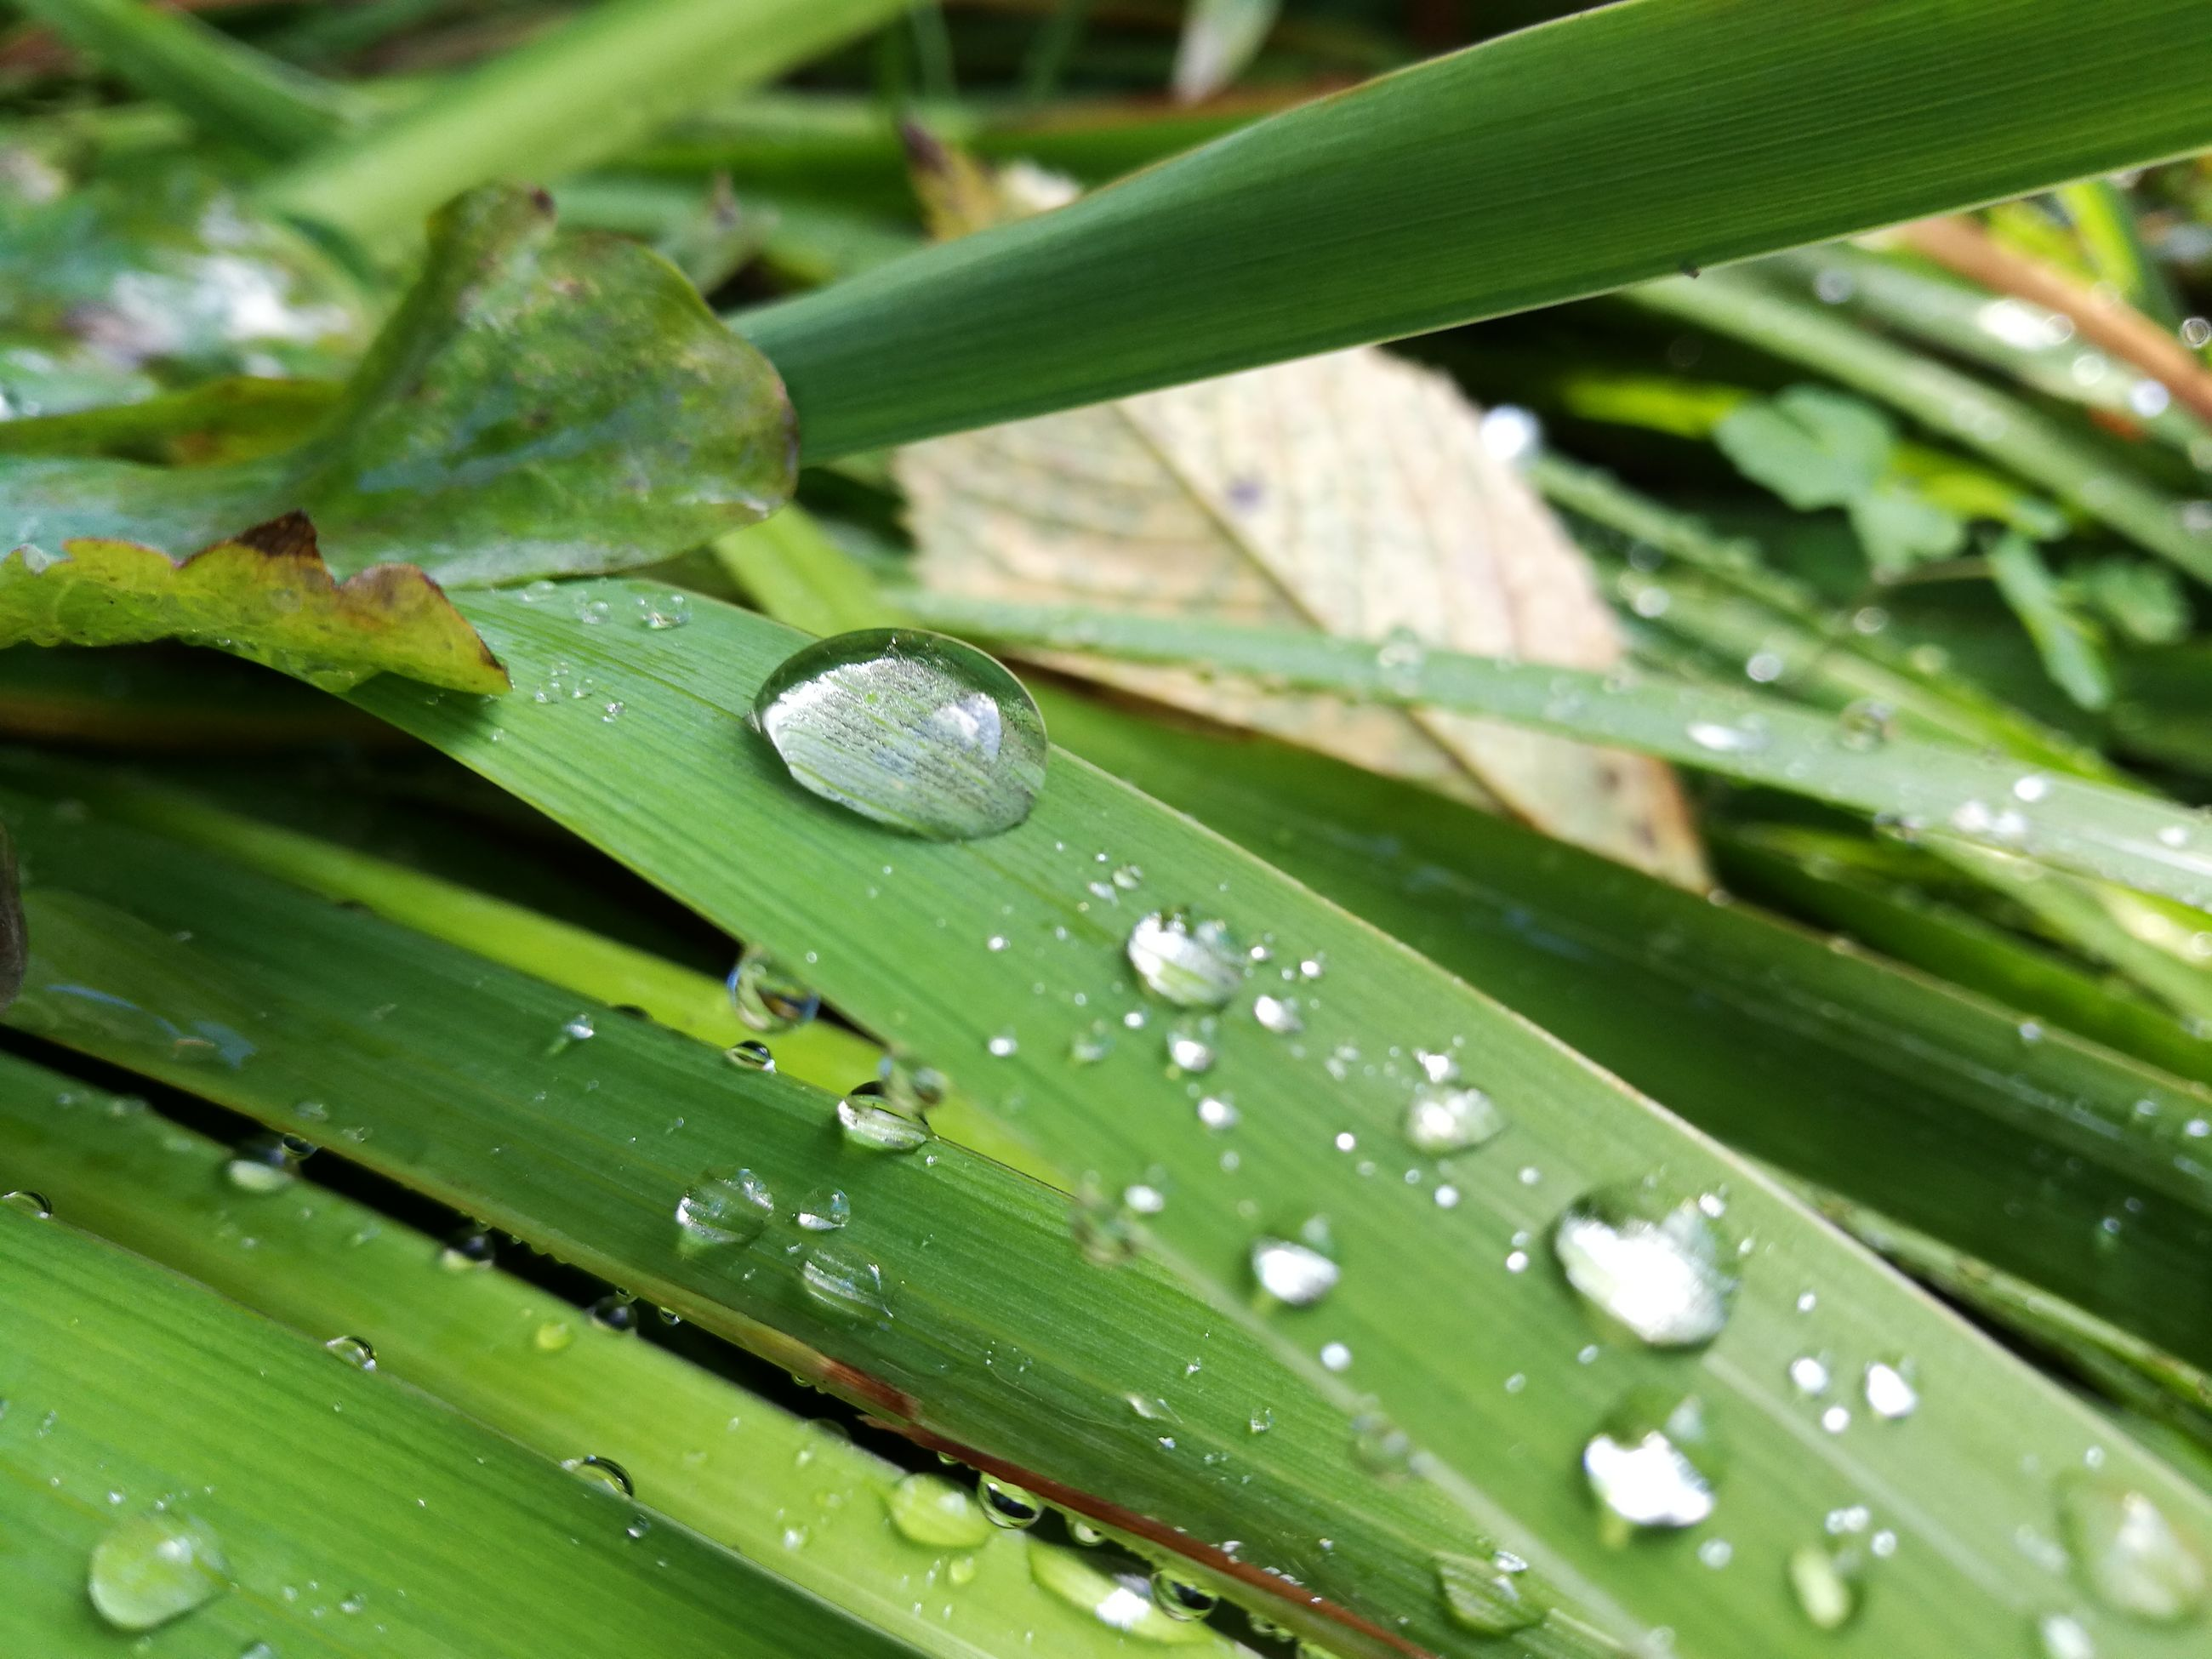 water, drop, leaf, wet, close-up, freshness, growth, plant, green color, dew, focus on foreground, nature, droplet, selective focus, purity, grass, detail, water drop, beauty in nature, day, fragility, green, blade of grass, outdoors, botany, extreme close-up, growing, leaves, tranquility